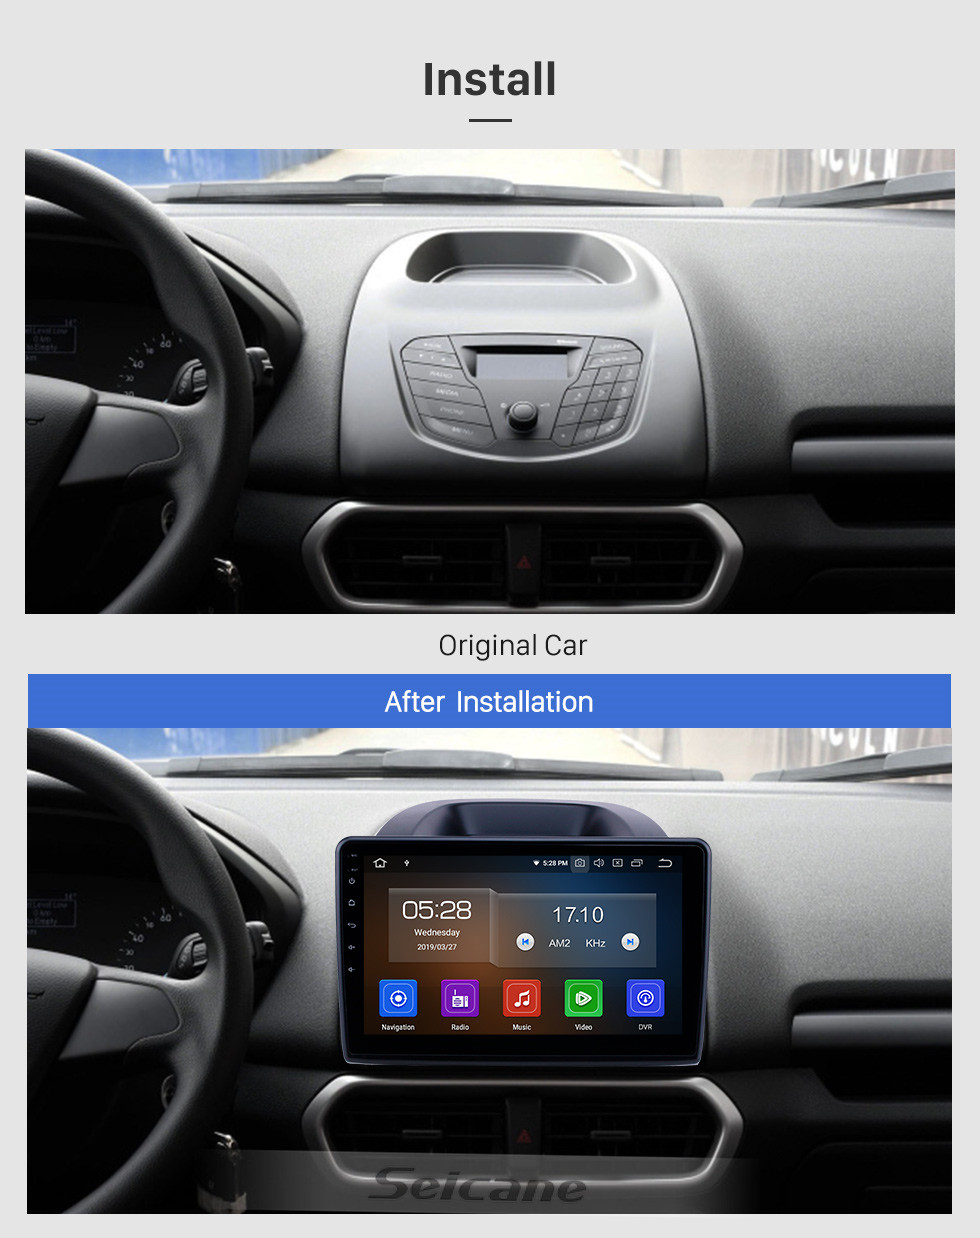 Seicane 10.1 inch Android 9.0 Radio for 2018-2019 Ford Ecosport with Bluetooth HD Touchscreen GPS Navigation Carplay support DAB+ TPMS